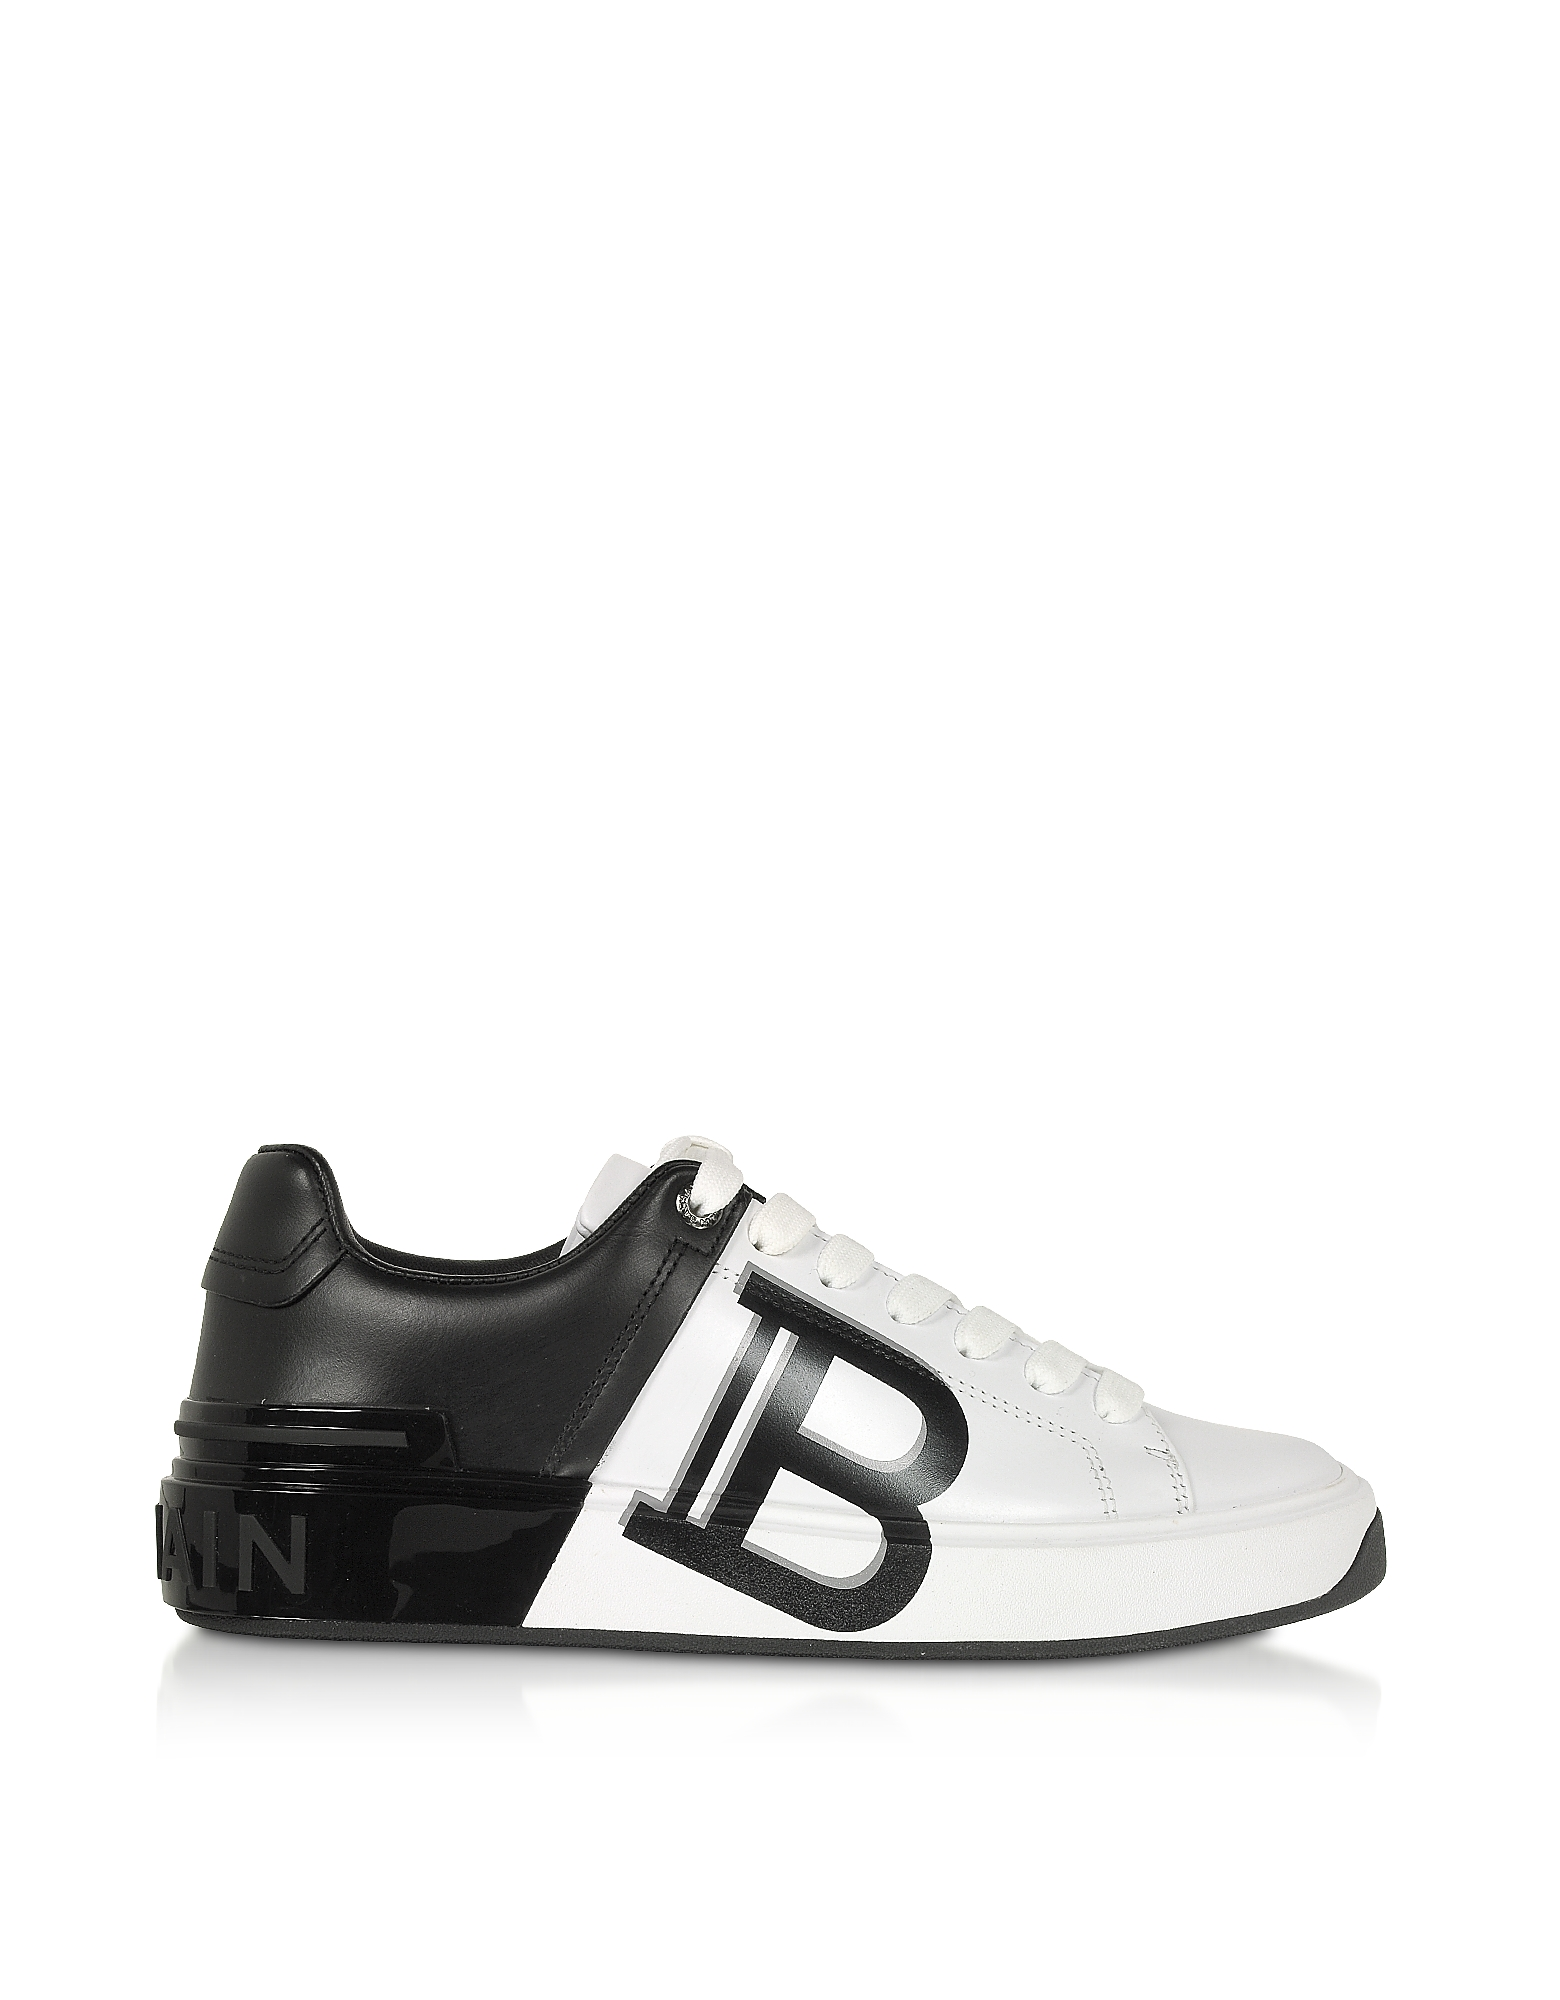 Balmain Designer Shoes, White & Black Leather Lace up Women's Sneakers